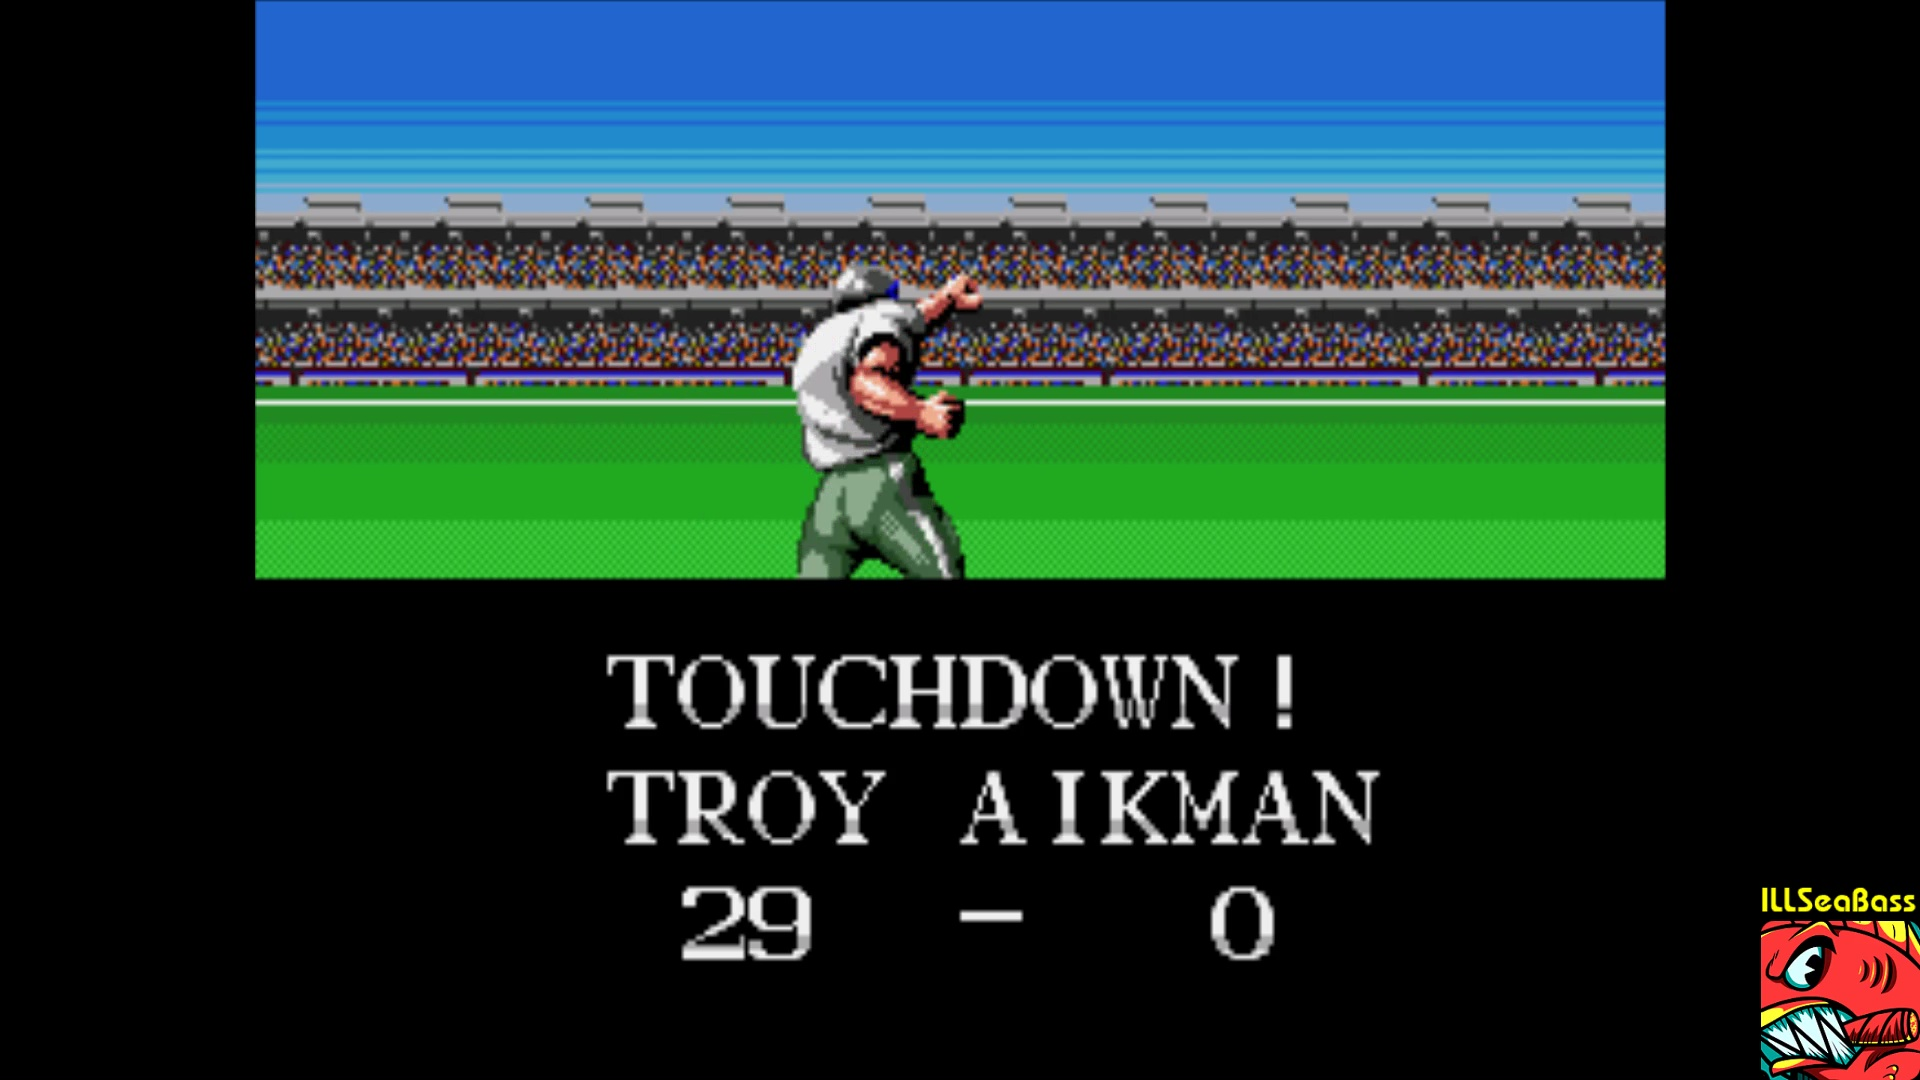 ILLSeaBass: Tecmo Super Bowl [Most Passing Yards] [Preseason] (Sega Genesis / MegaDrive Emulated) 473 points on 2018-01-04 22:59:50